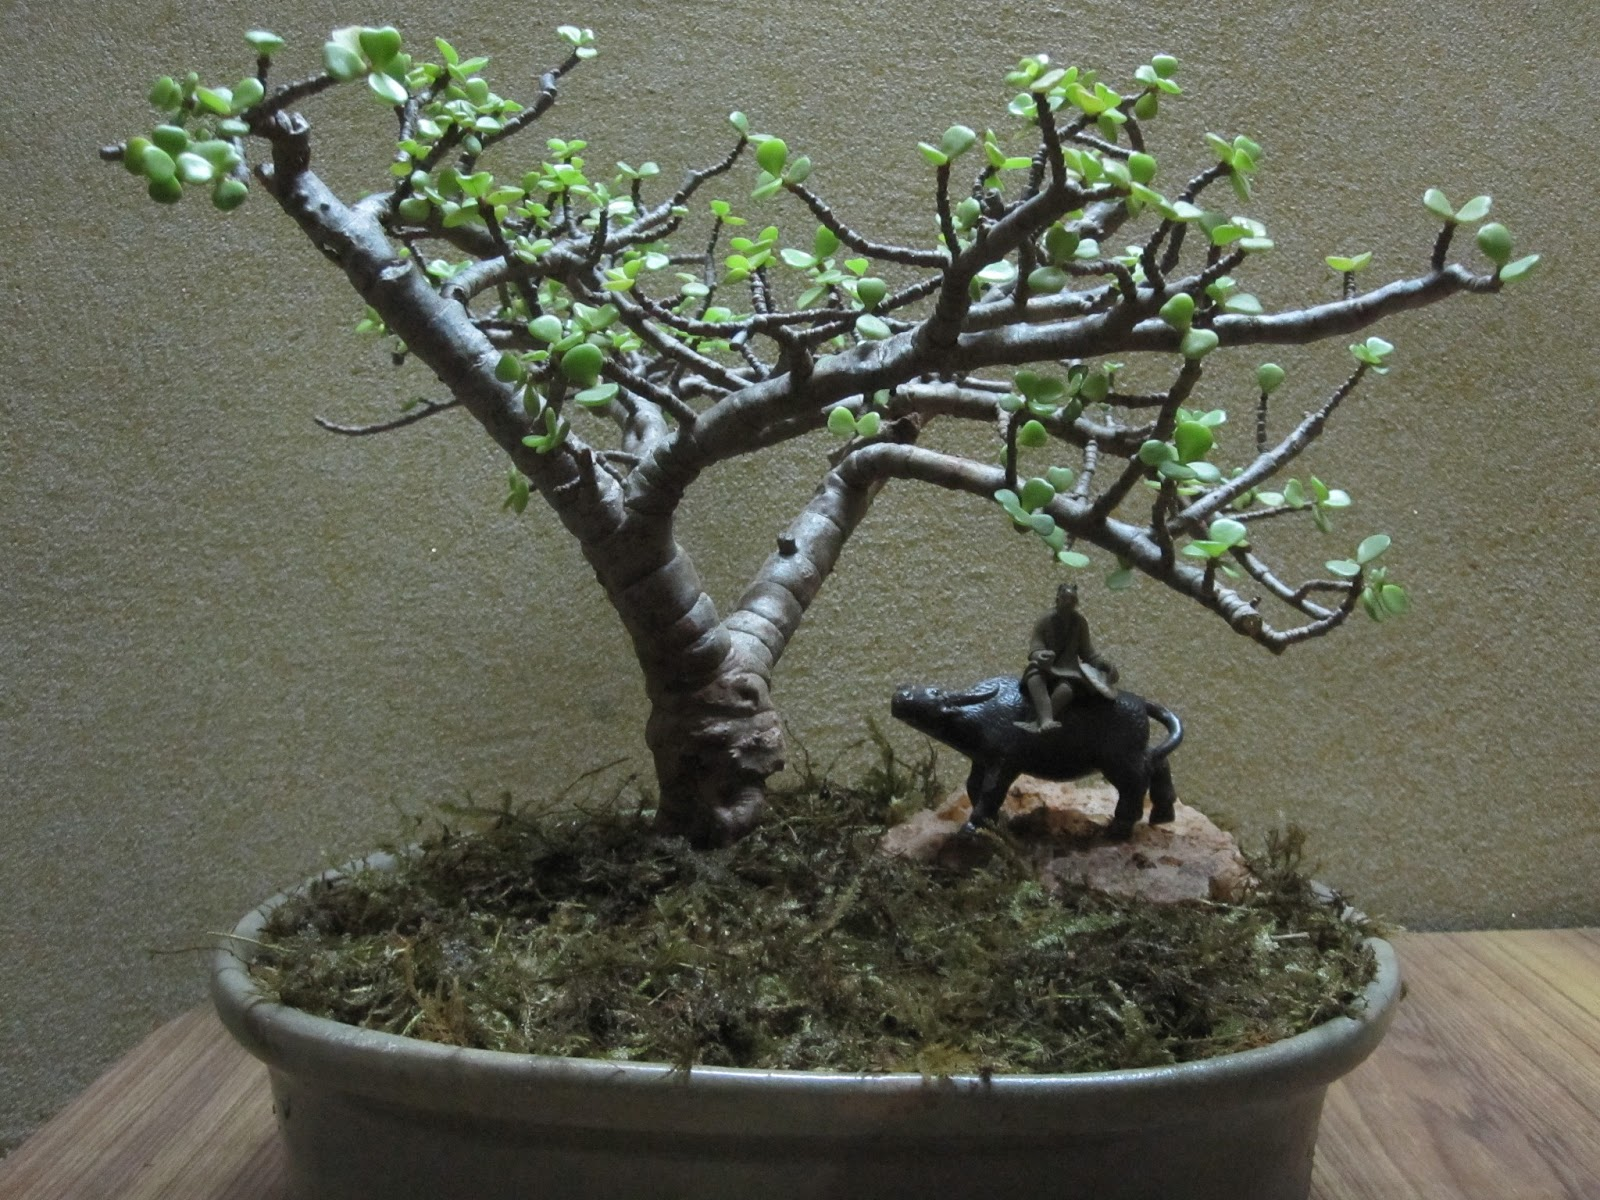 Wwwkapilaascom Jade As A Bonsai